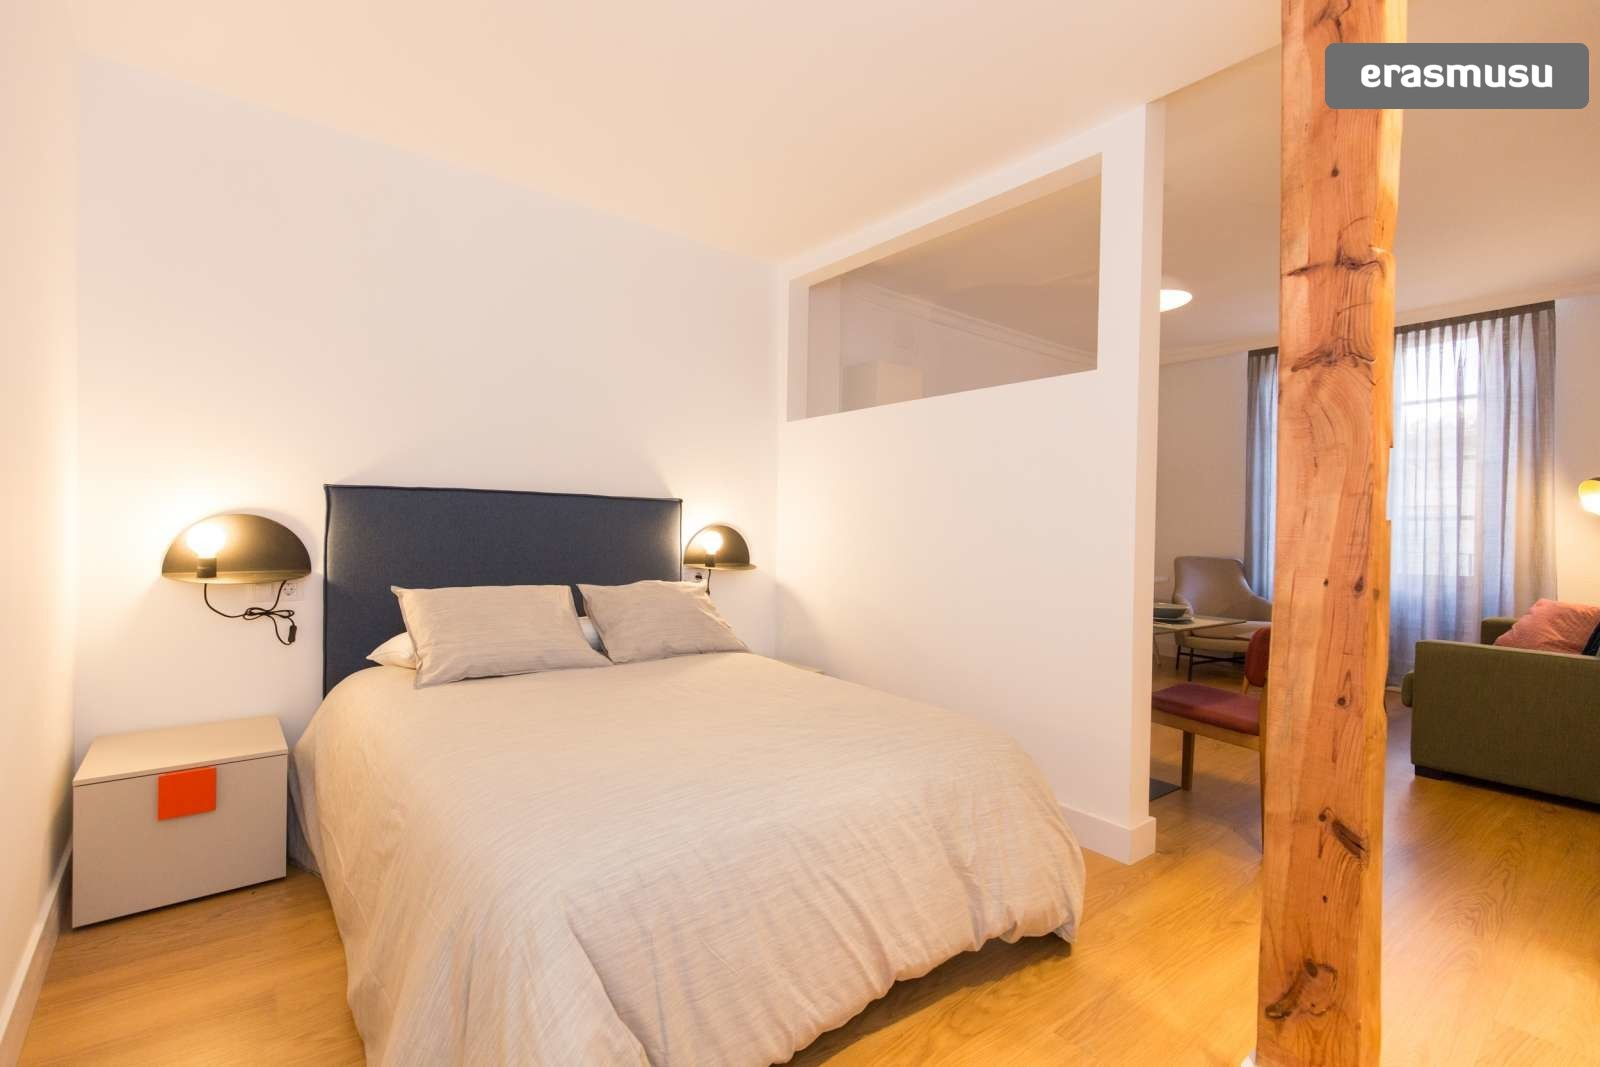 Charming 1 bedroom double apartment for rent in City